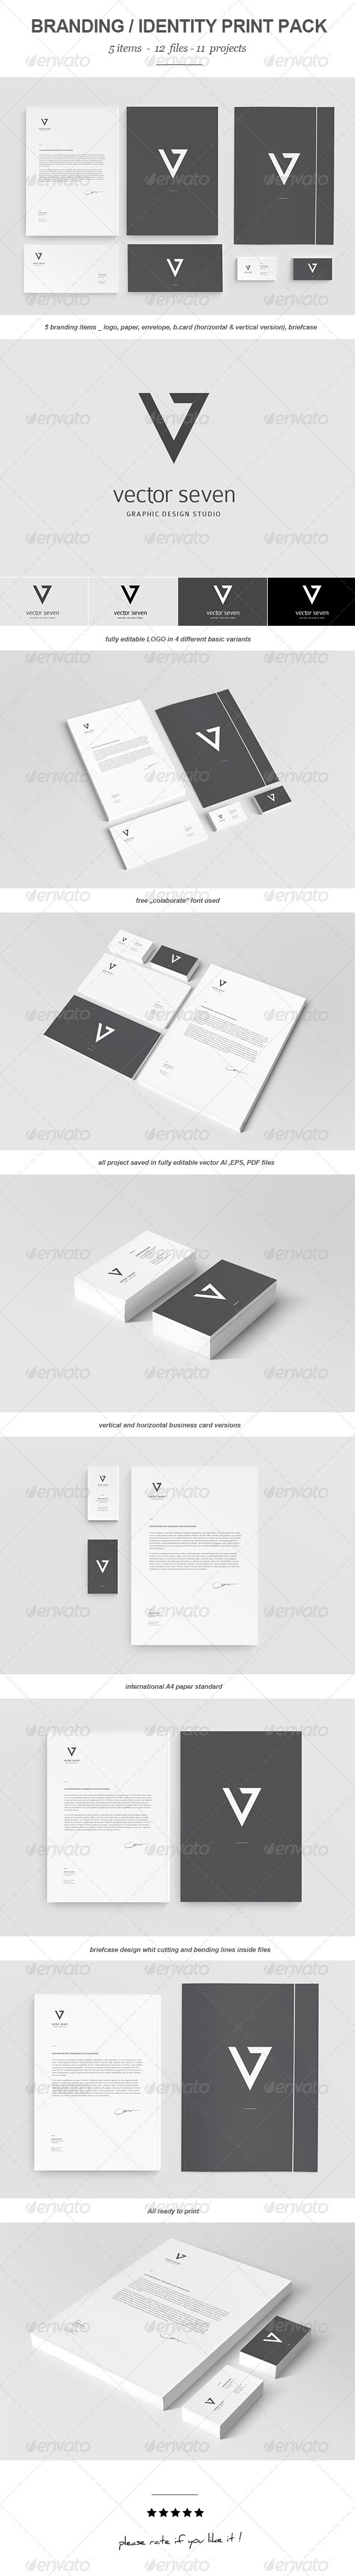 Seven Vector Branding Print Pack - Stationery Print Templates